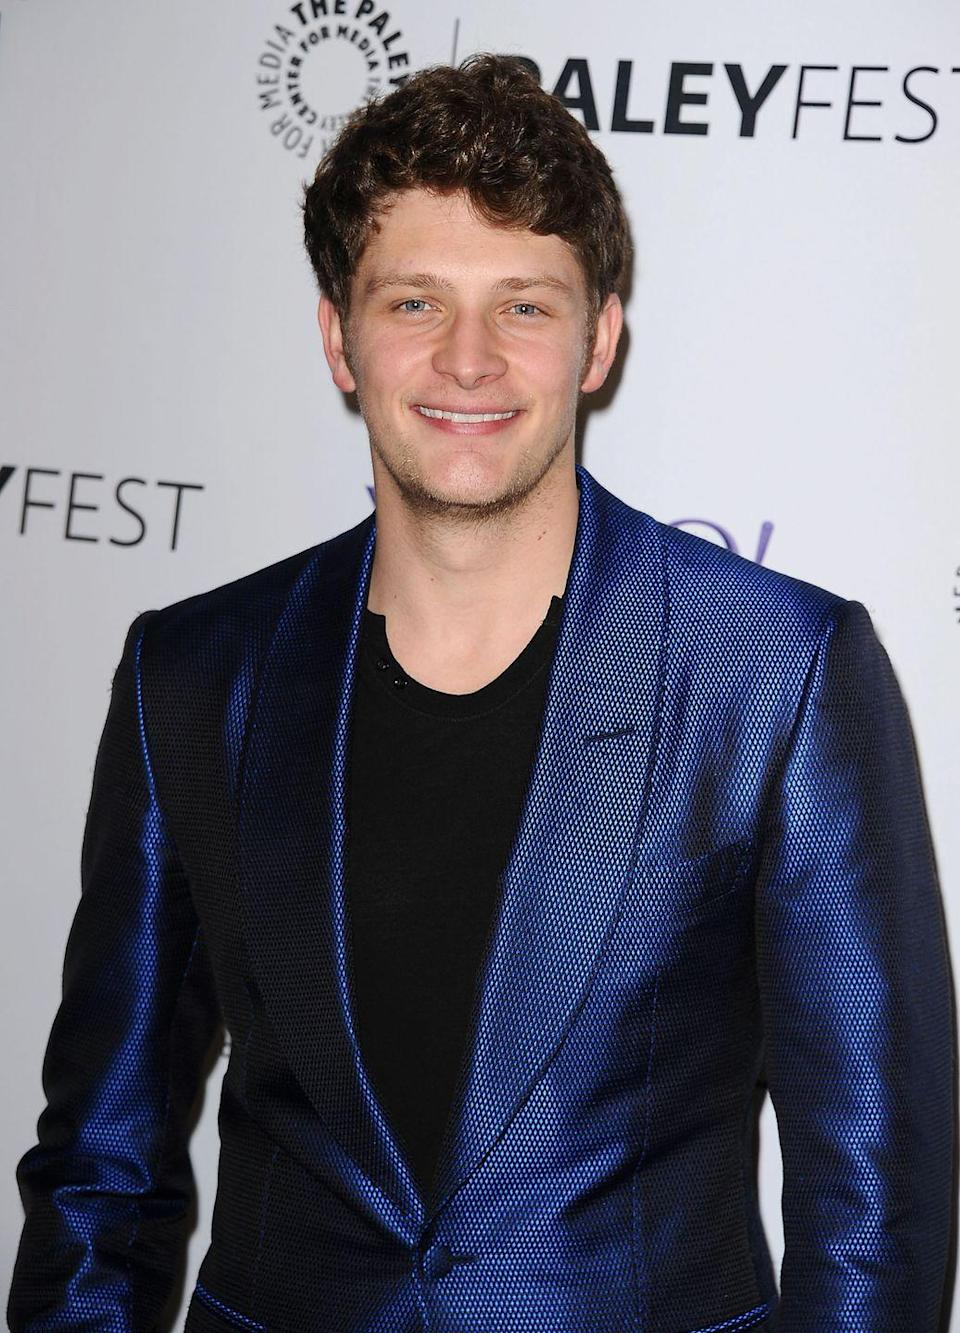 "<p>When Michael died suddenly in season 2 of <em>Jane the Virgin, </em>fans were up in arms and rumors that Brett Dier was motivated to move on to other projects began popping up. Little did they know, Dier would make a comeback in the final season. The<a href=""https://www.goodhousekeeping.com/life/entertainment/g32160800/shocking-character-exits-on-tv/?&slide=18"" rel=""nofollow noopener"" target=""_blank"" data-ylk=""slk:producer's thought of the idea in season 1"" class=""link rapid-noclick-resp""> producer's thought of the idea in season 1</a> and Dier was instantly on board. </p>"